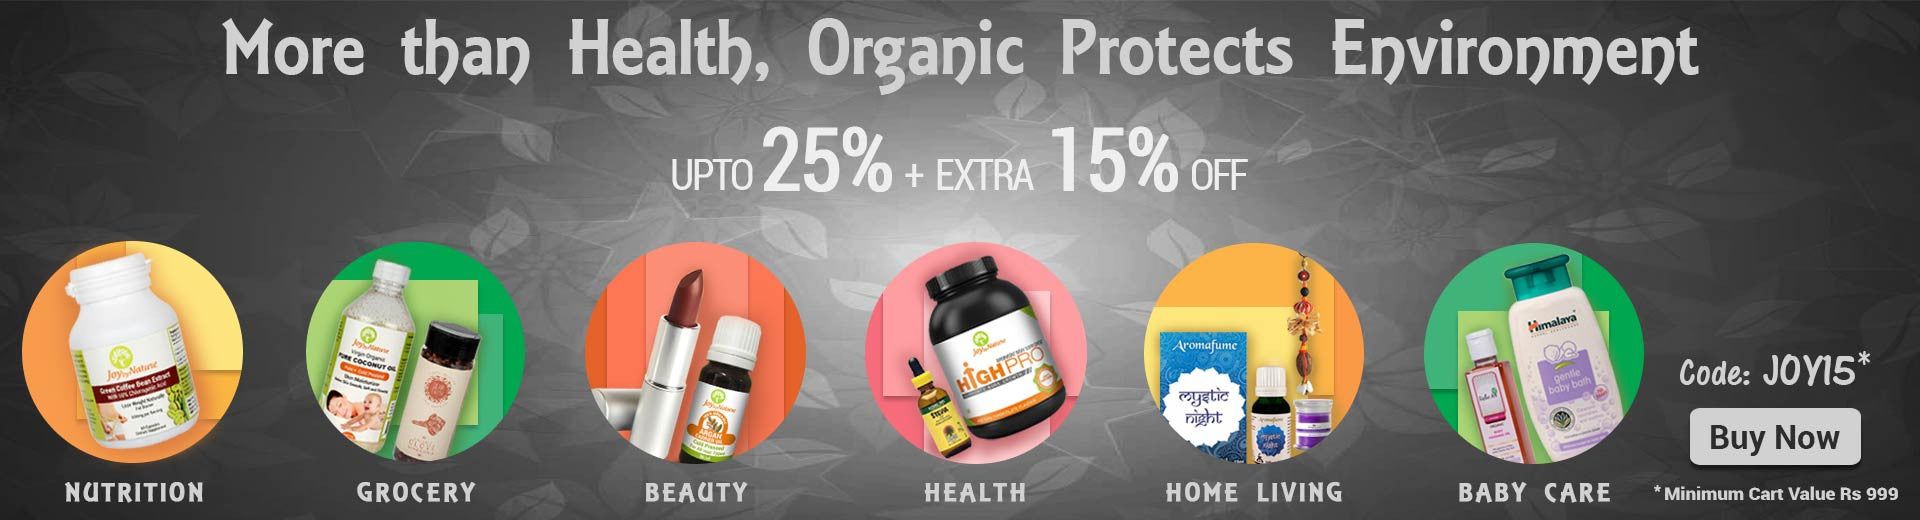 Buy Organic & Natural Products Online